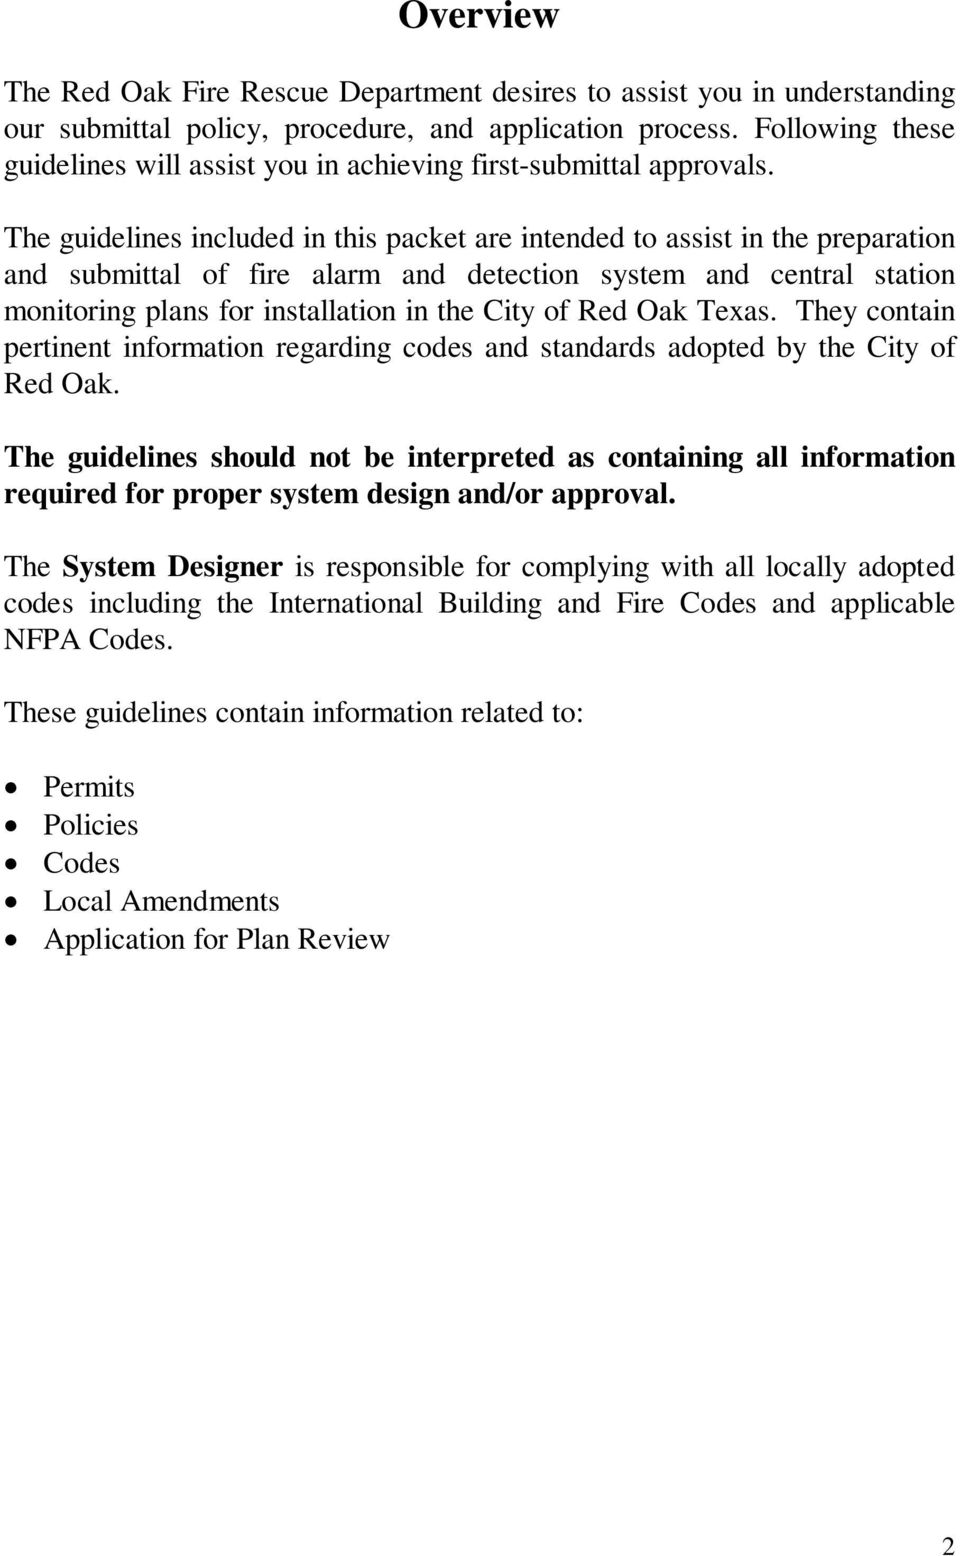 The guidelines included in this packet are intended to assist in the preparation and submittal of fire alarm and detection system and central station monitoring plans for installation in the City of